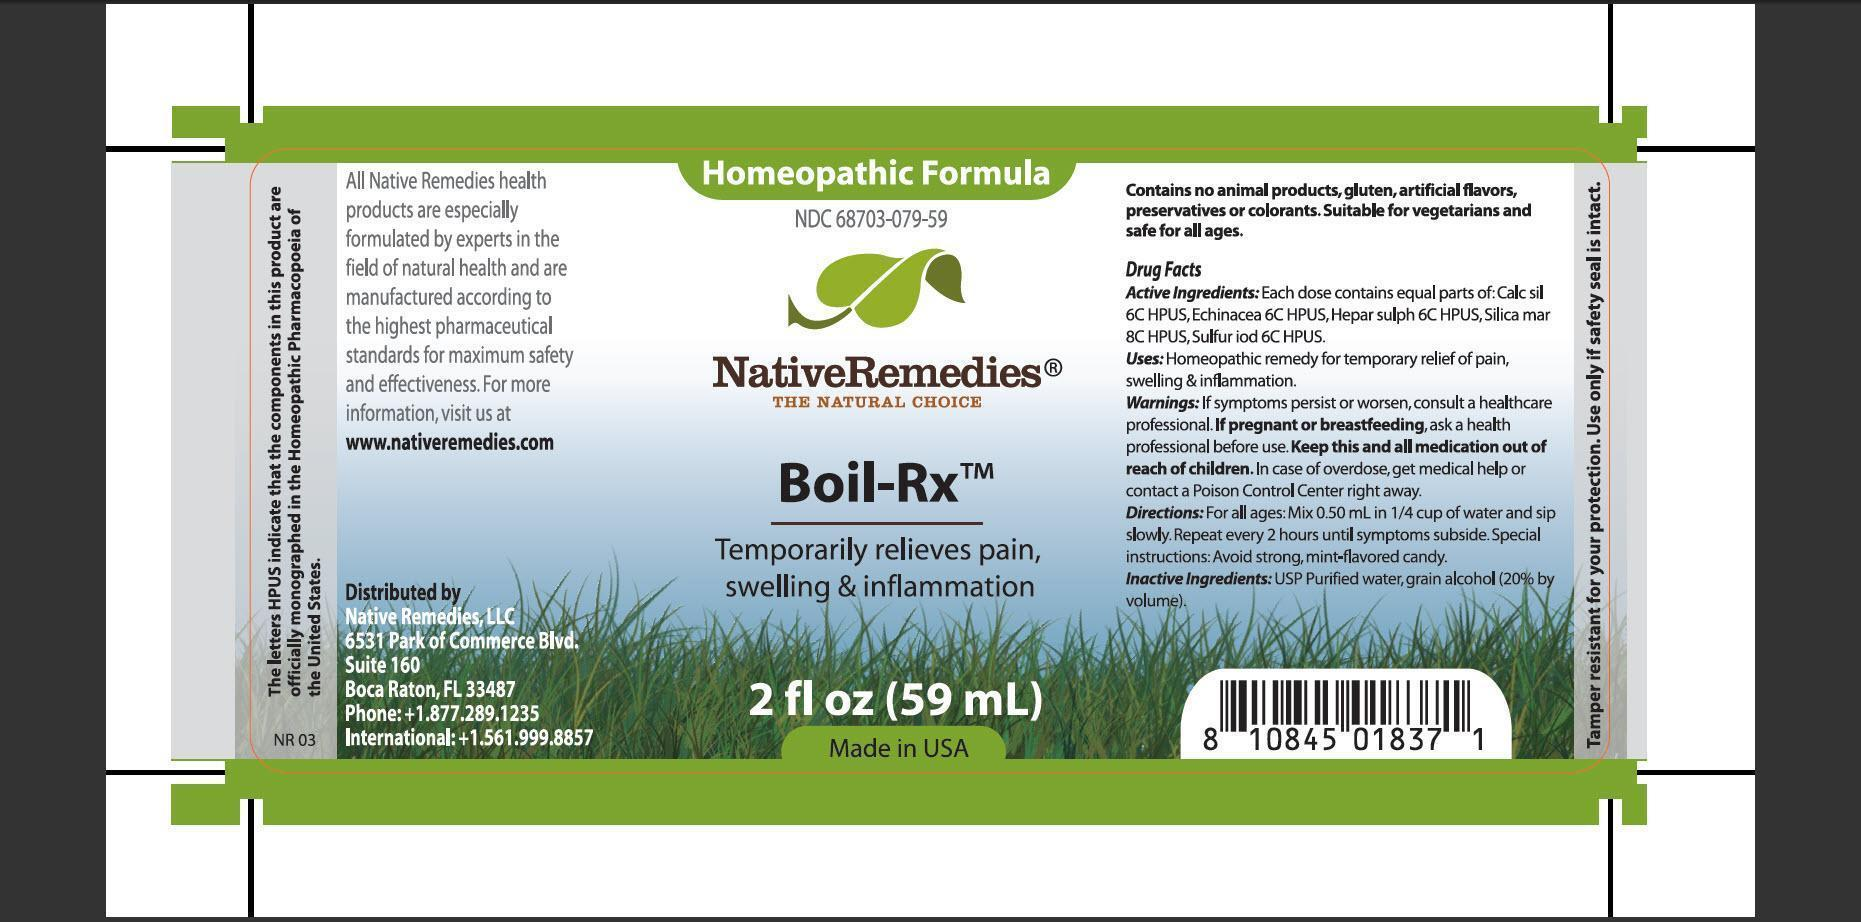 Boil-rx (Calc Sil, Echinacea, Hepar Sulph, Silica Mar, Sulfur Iod) Tincture [Native Remedies, Llc]